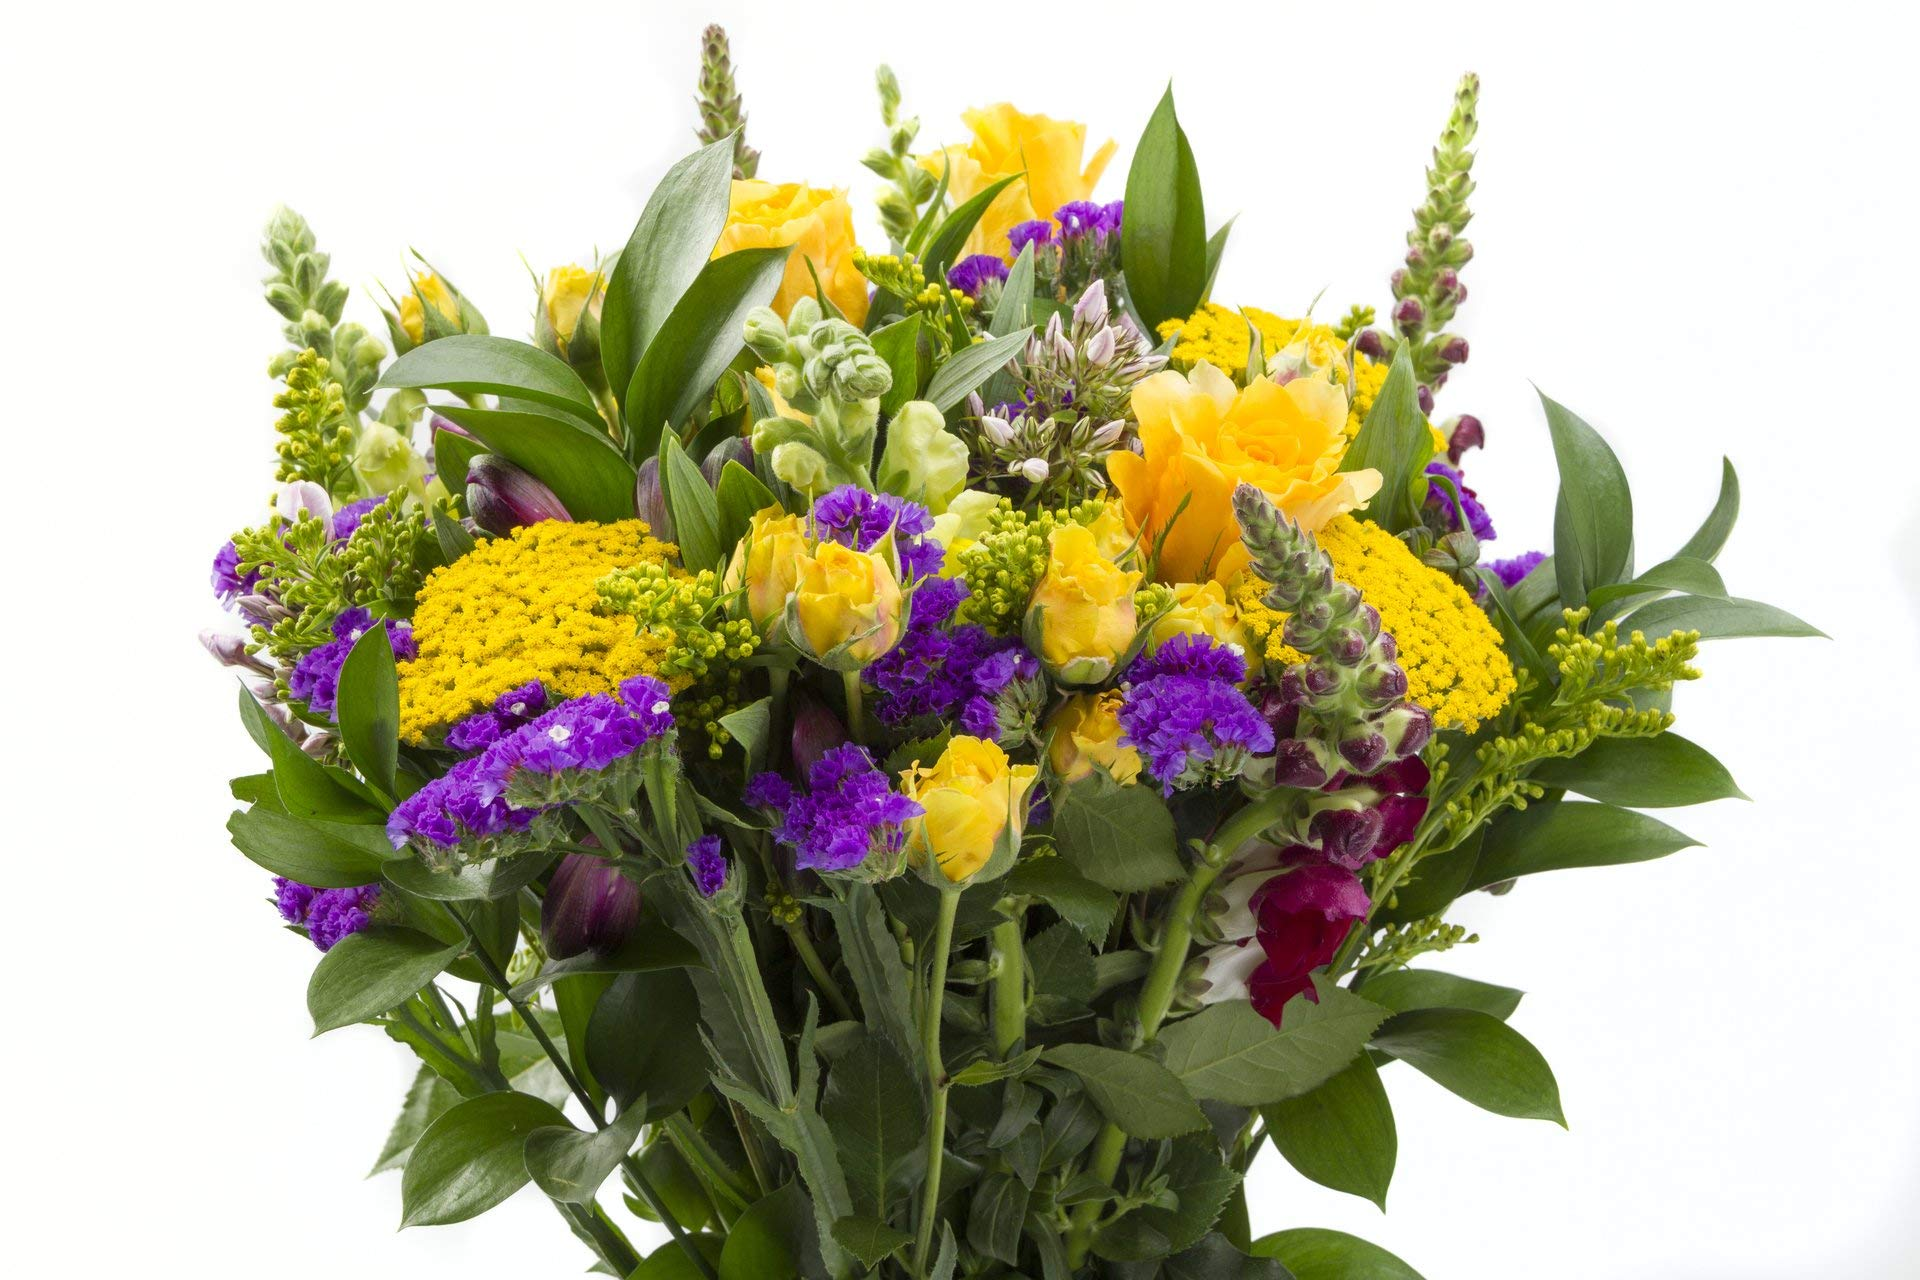 Chichi Party Purple and Yellow Flowers with Roses, Snapdragons, and More Sustainably Grown and Harvested, No Vase Included by BloomsyBox (Image #3)